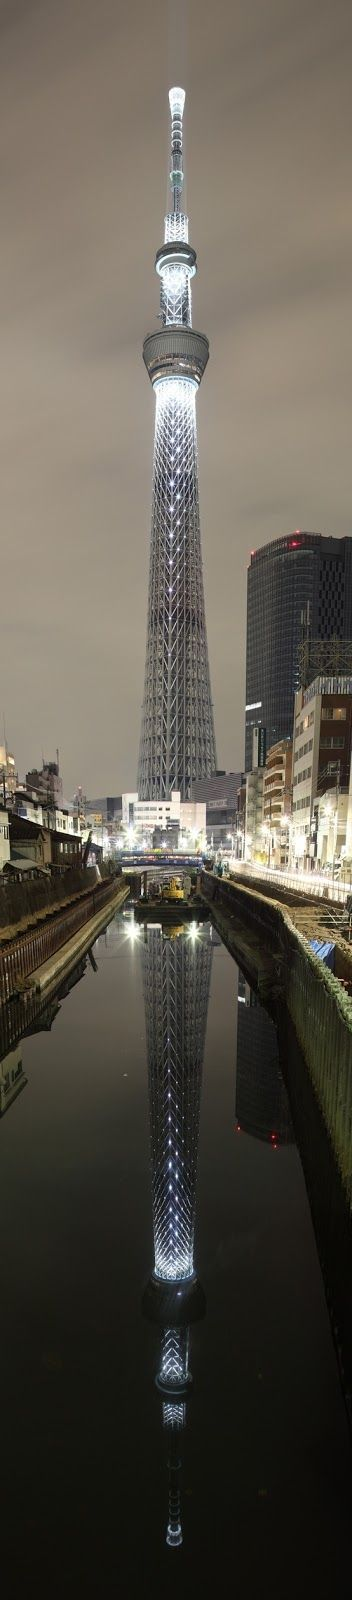 Visit TopTravelLists.Com   Tokyo Skytree - Sumida, Tokyo - 2,080 feet - 2nd tallest building in the world as of 2011 - radio & tv tower with restaurant & 3 observatories